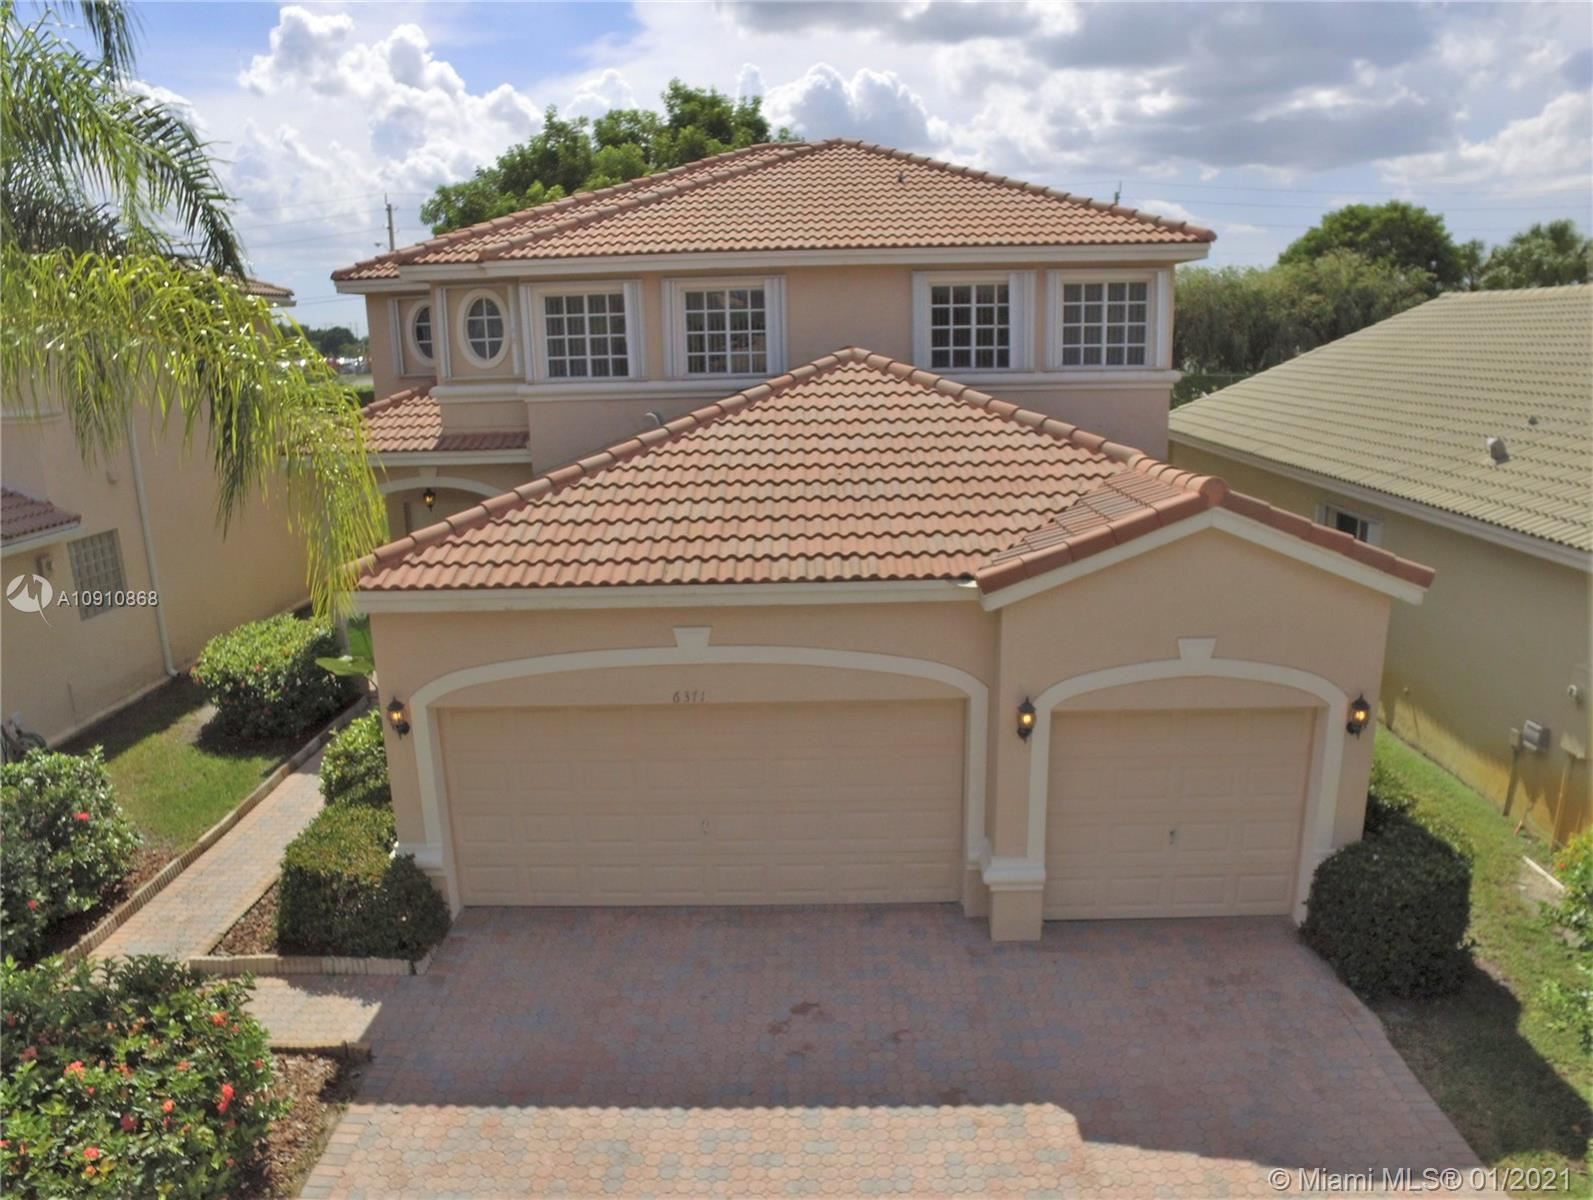 6371 SW 195th Ave, Pembroke Pines, FL 33332 - #: A10910868